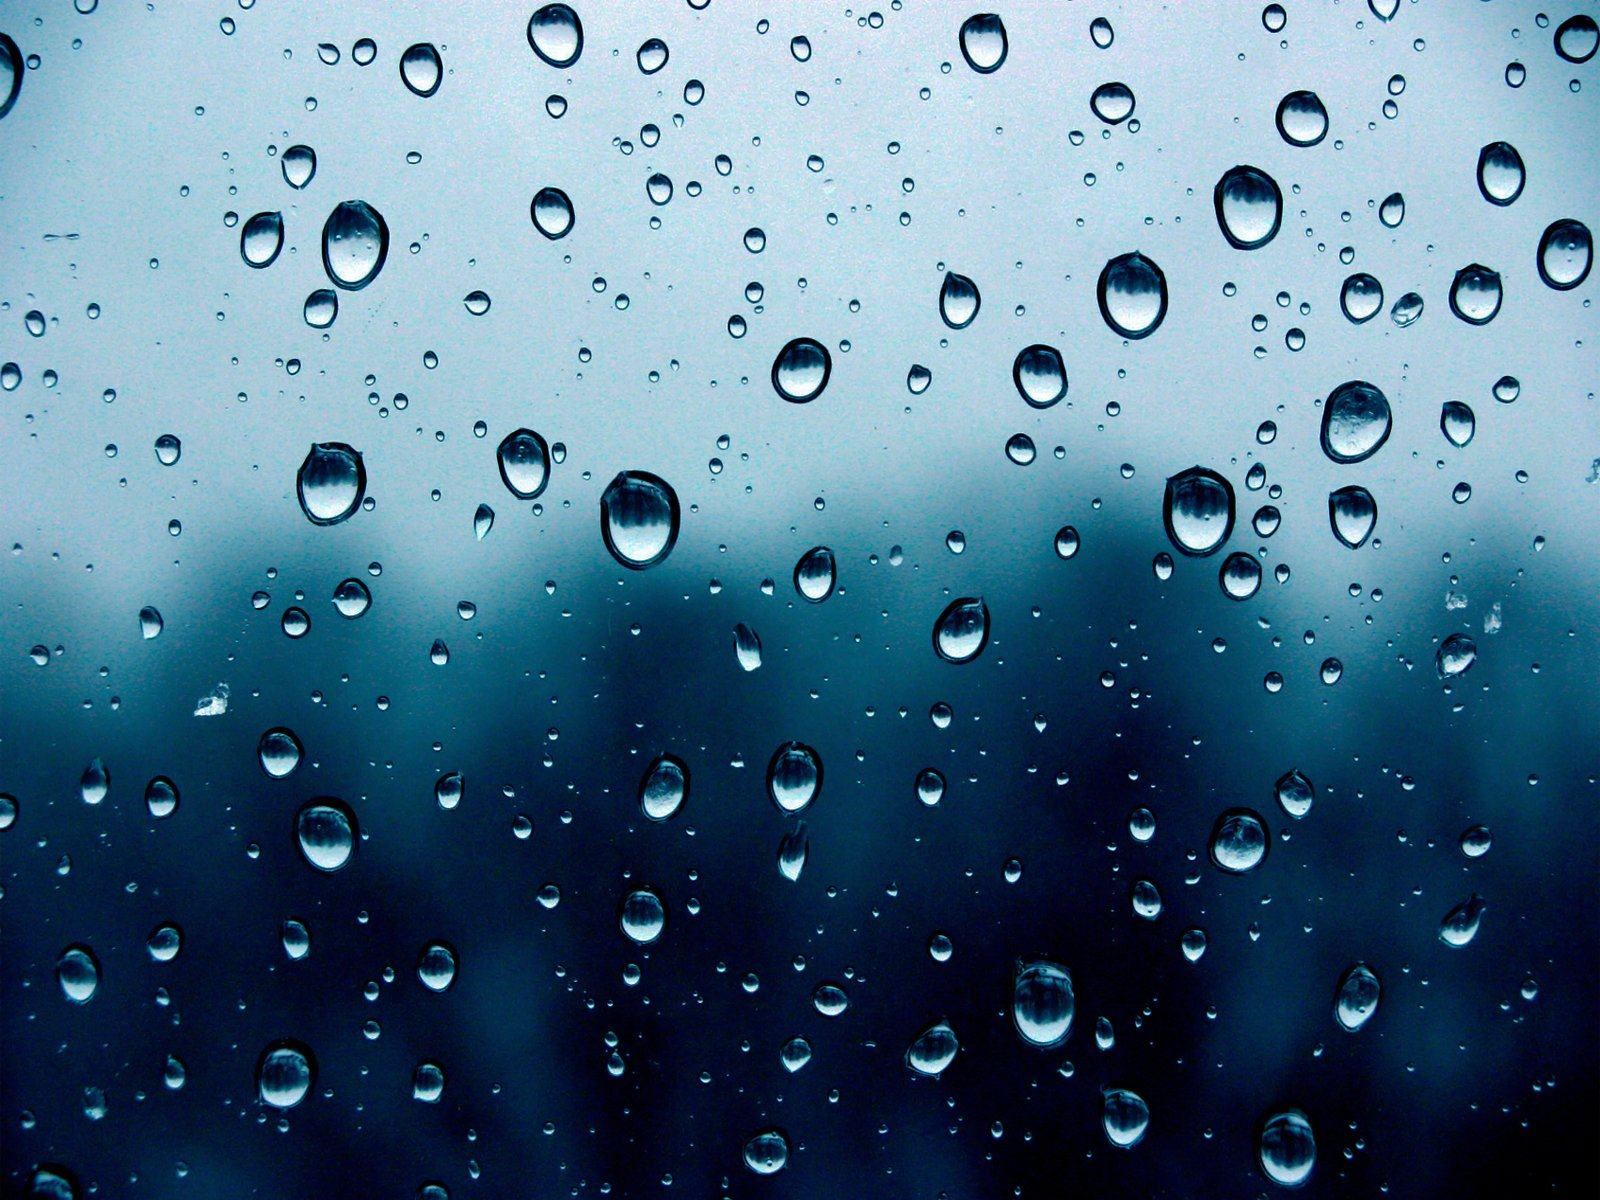 Water Drops Wallpapers 01